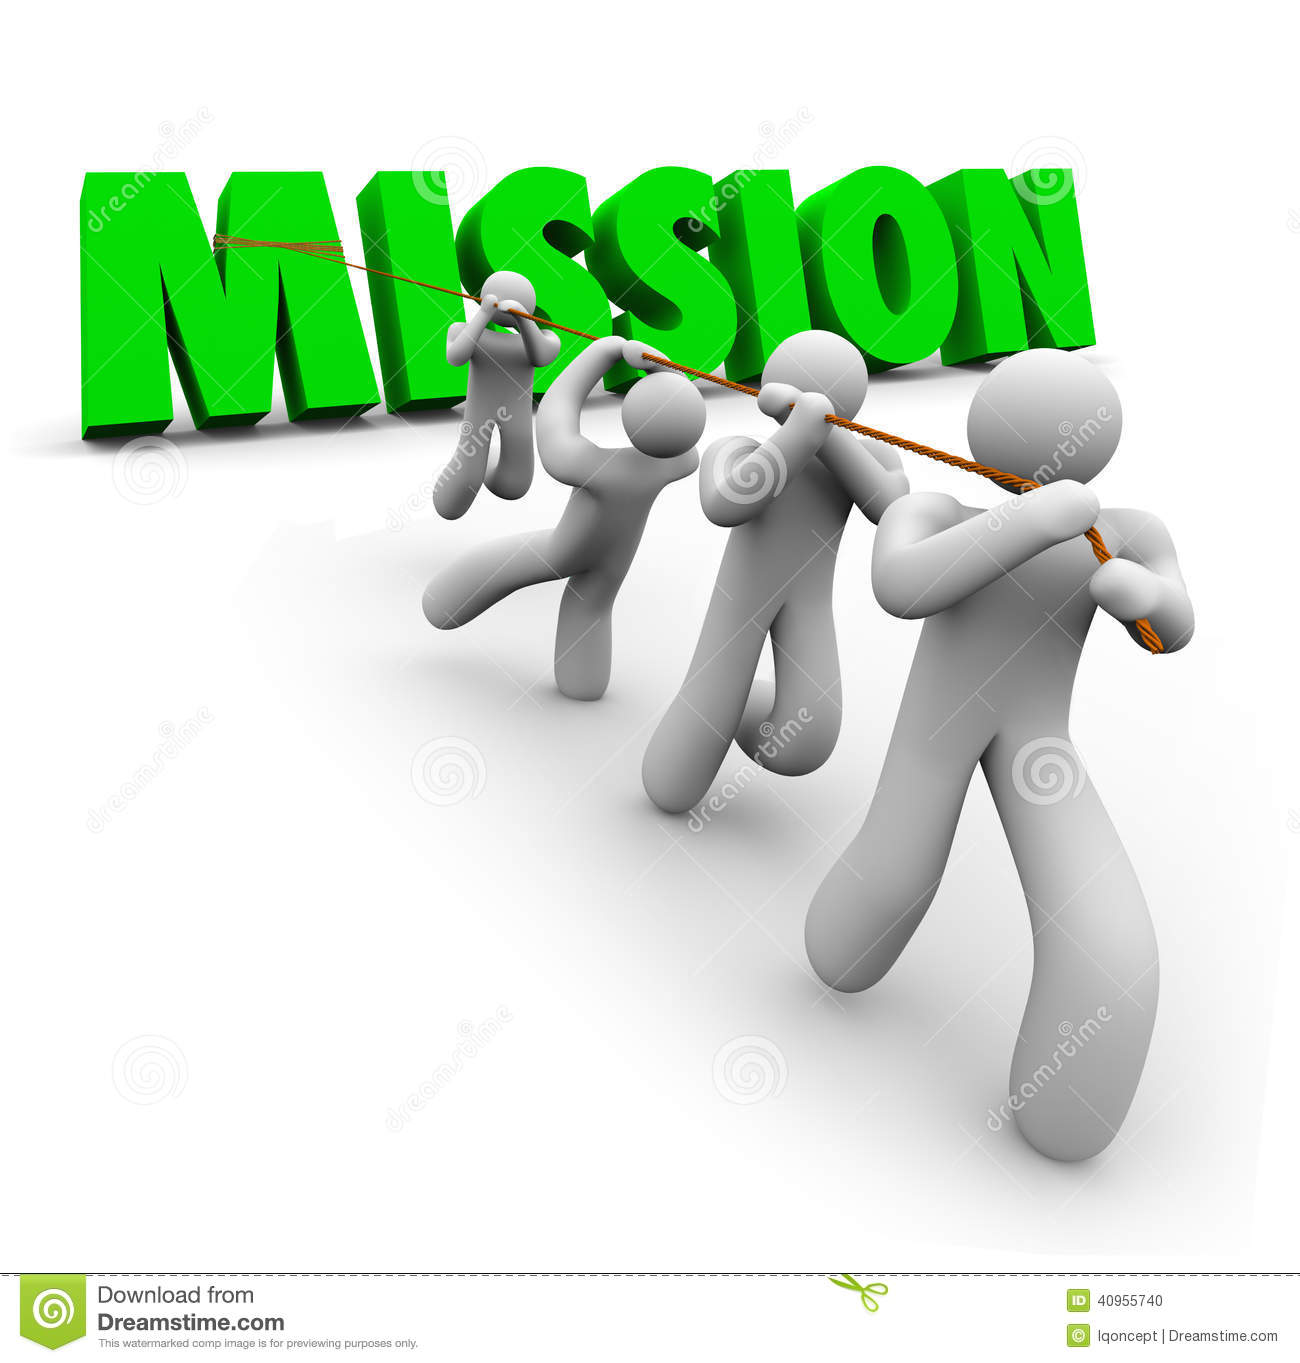 mission clipart